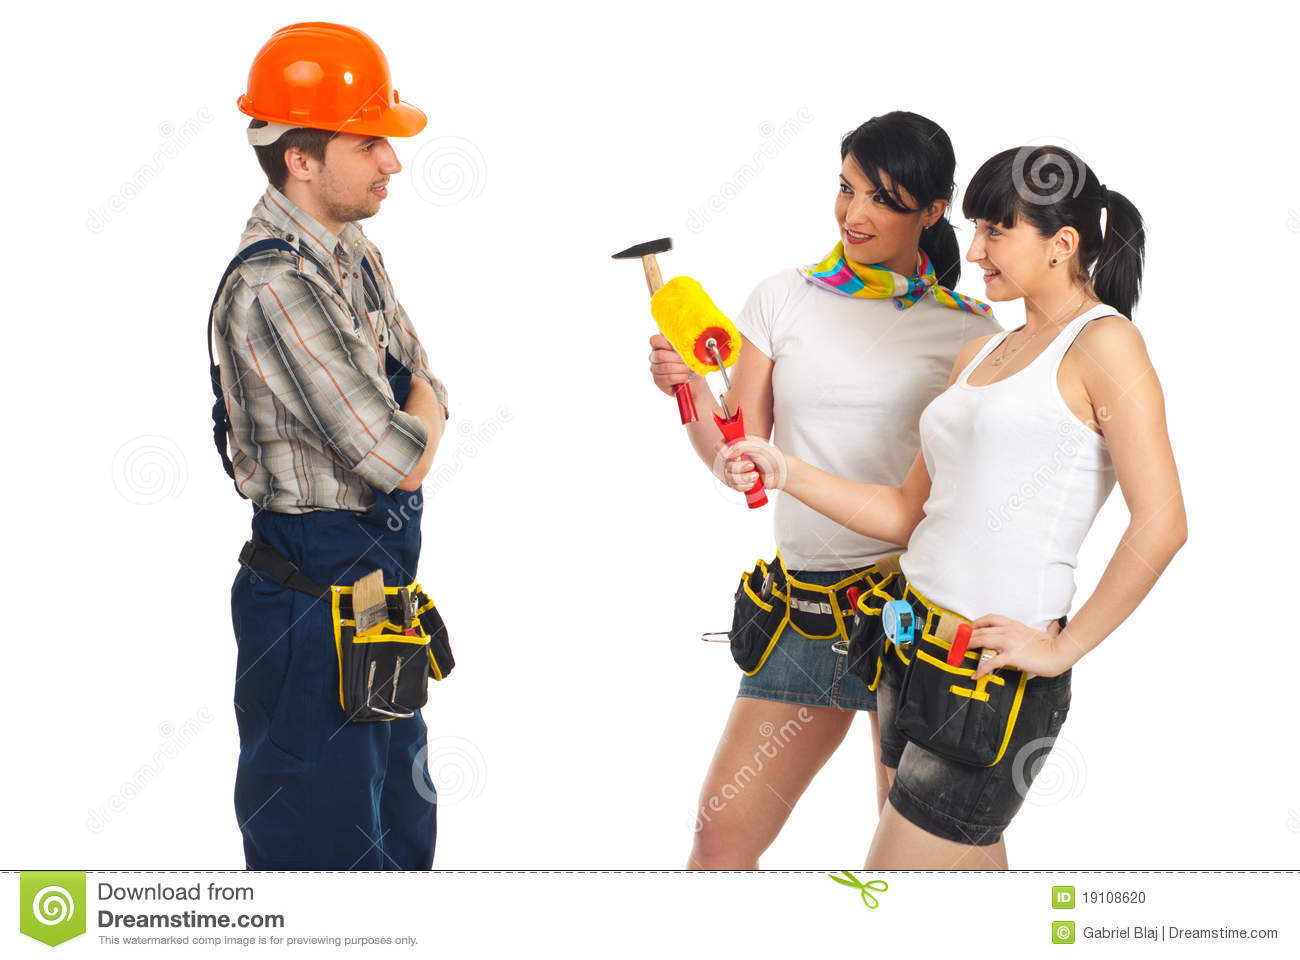 how to flirt with a construction worker